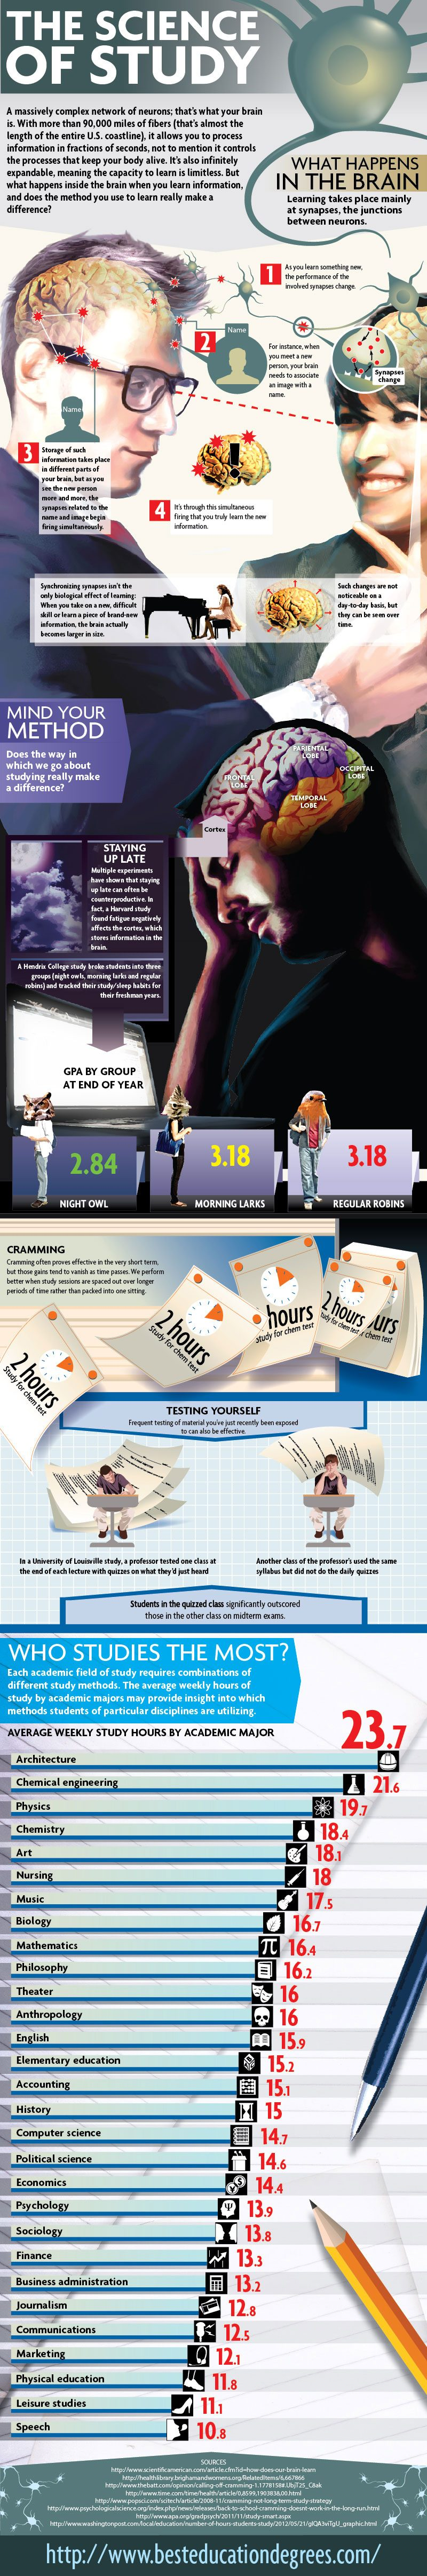 The Science of Study [Infographic]